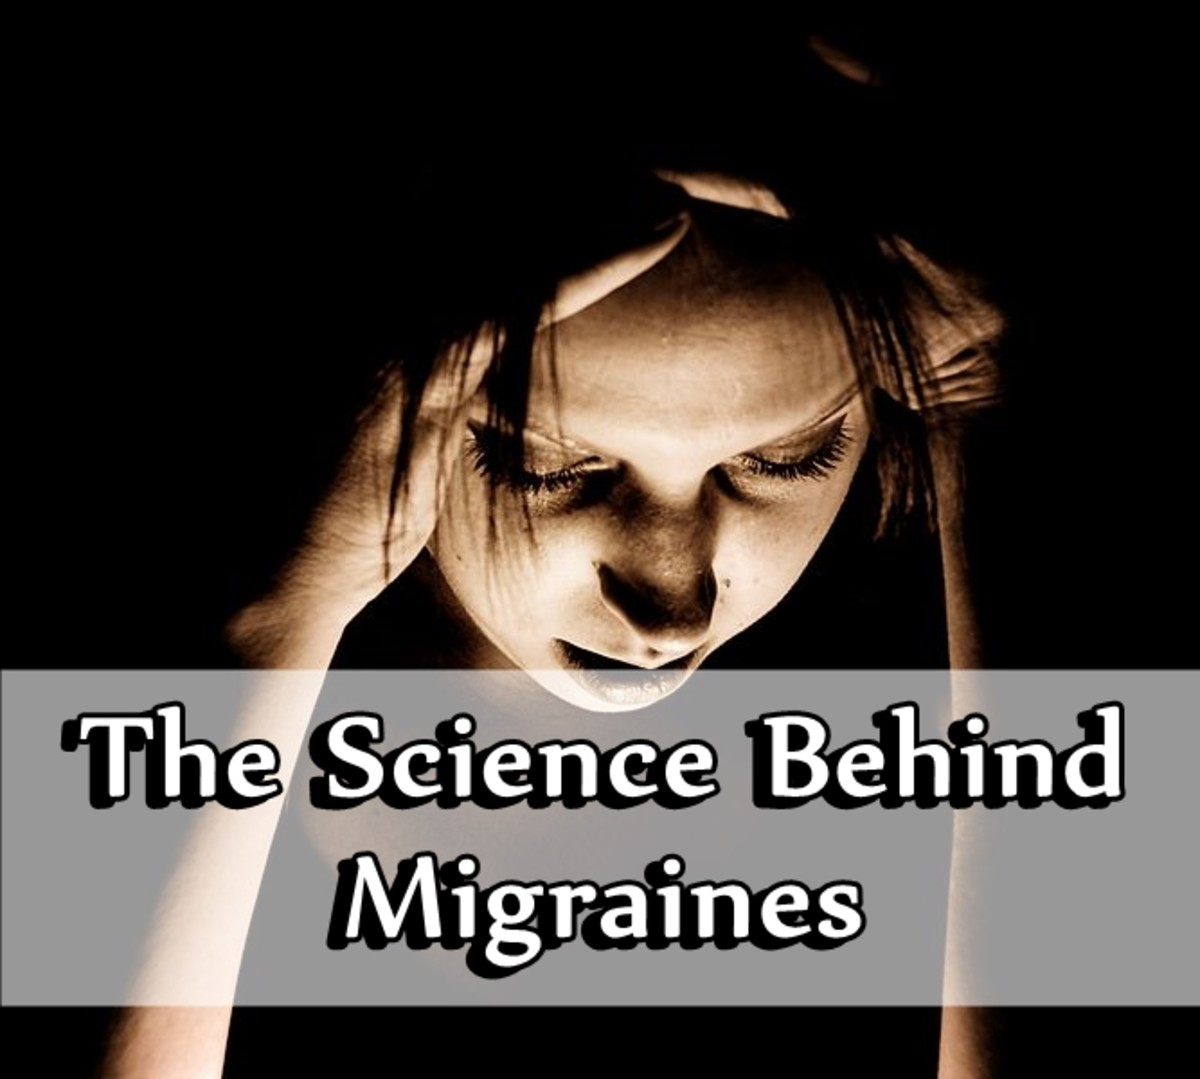 The Science Behind Migraines